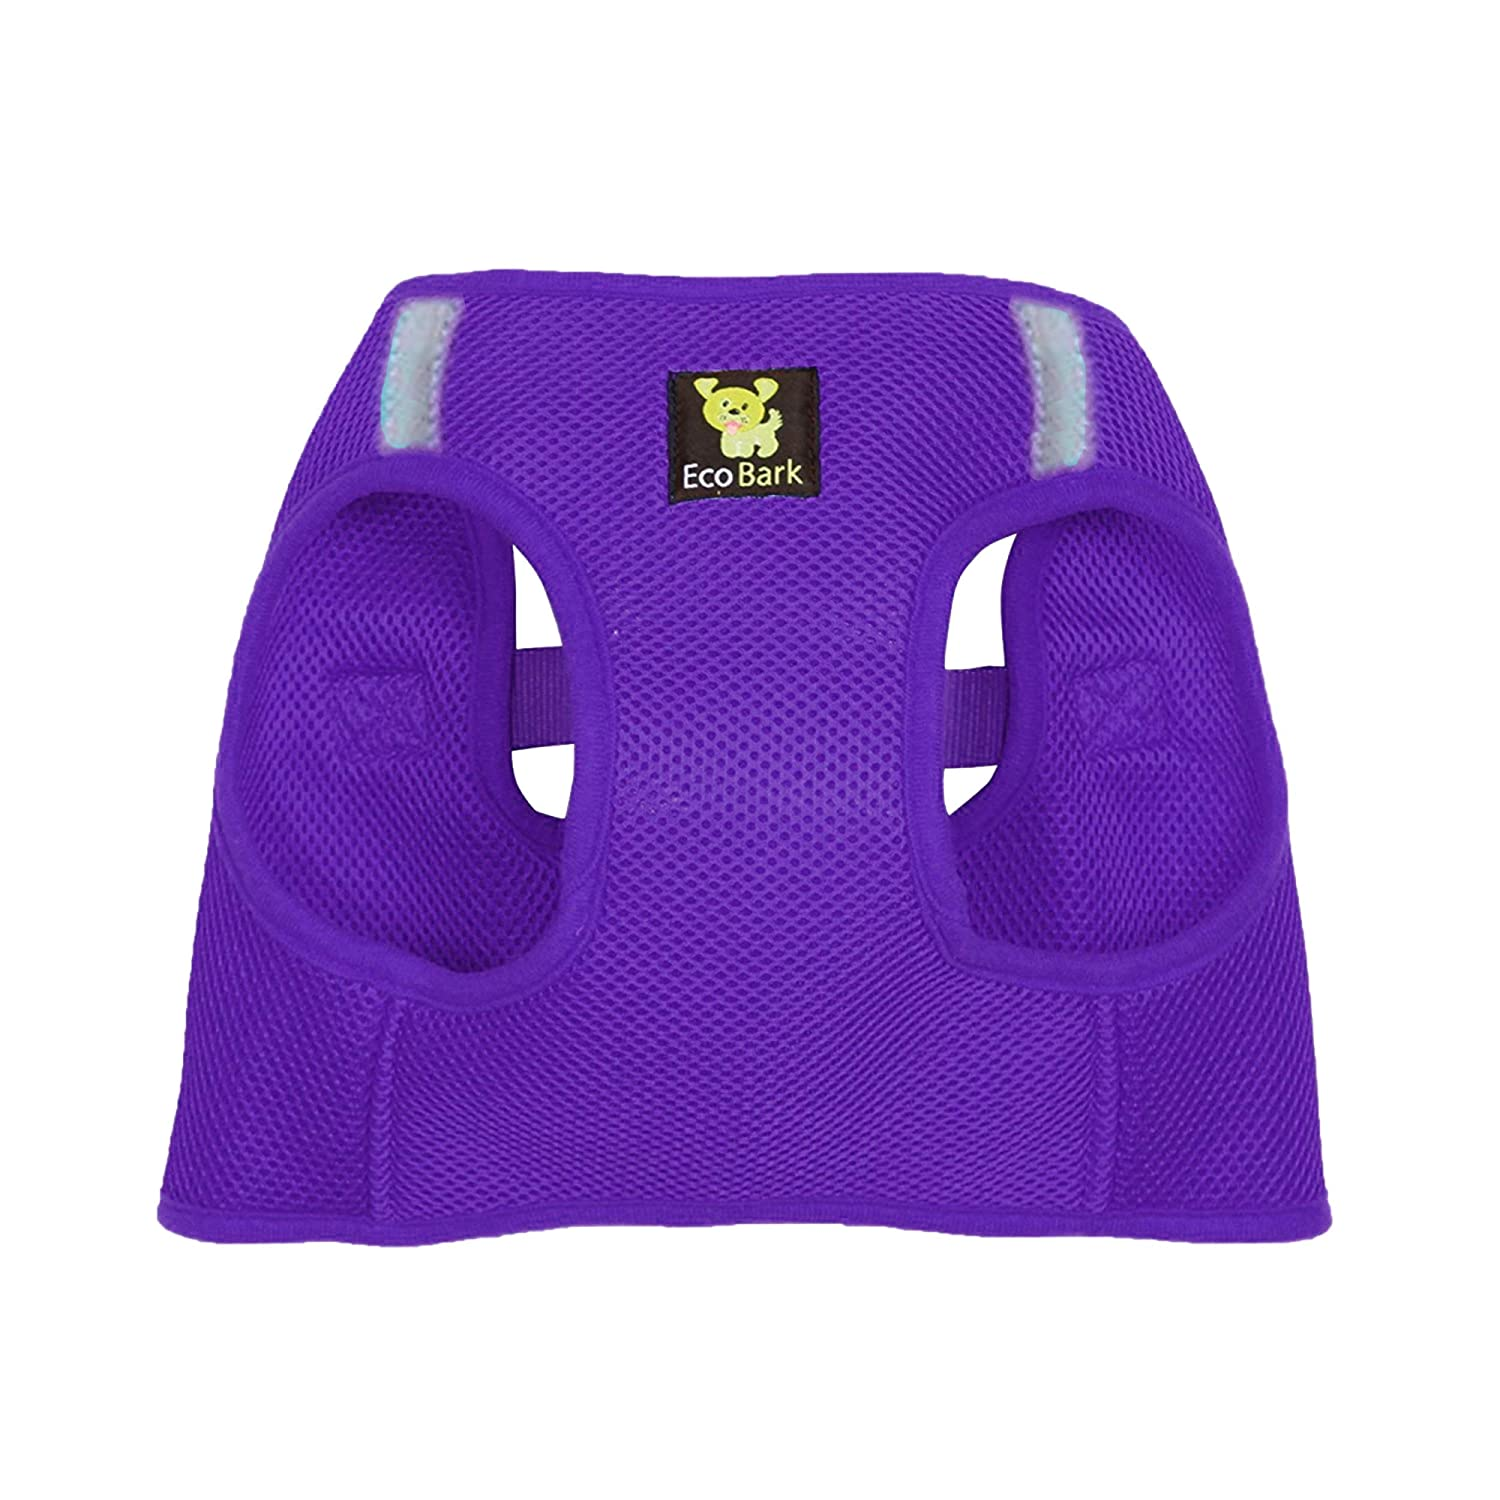 EcoBark Step in Dog Harness Rapid Fastener Reflective Soft Ultra Padded Mesh Dog Harnesses Eco-Friendly Comfort Secure Halter No Pull Adjustable Pet Vest for Toy Breeds Small Medium Dogs and Puppies